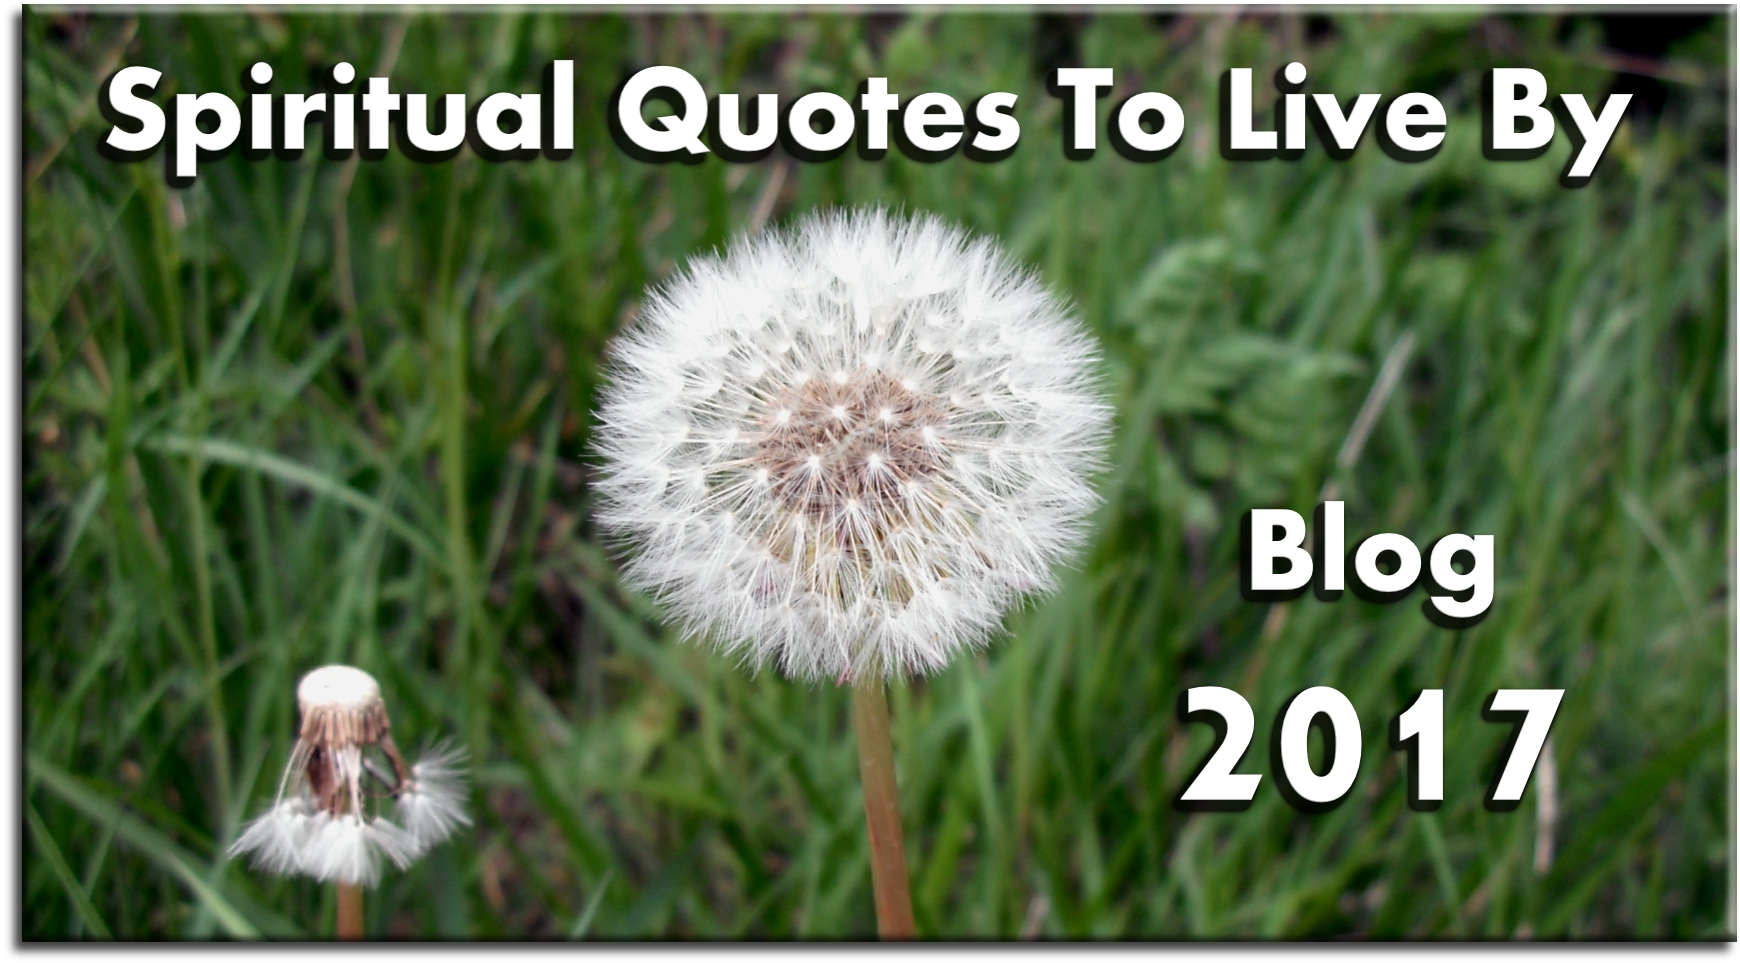 Spiritual Quotes To Live By - Blog 2017